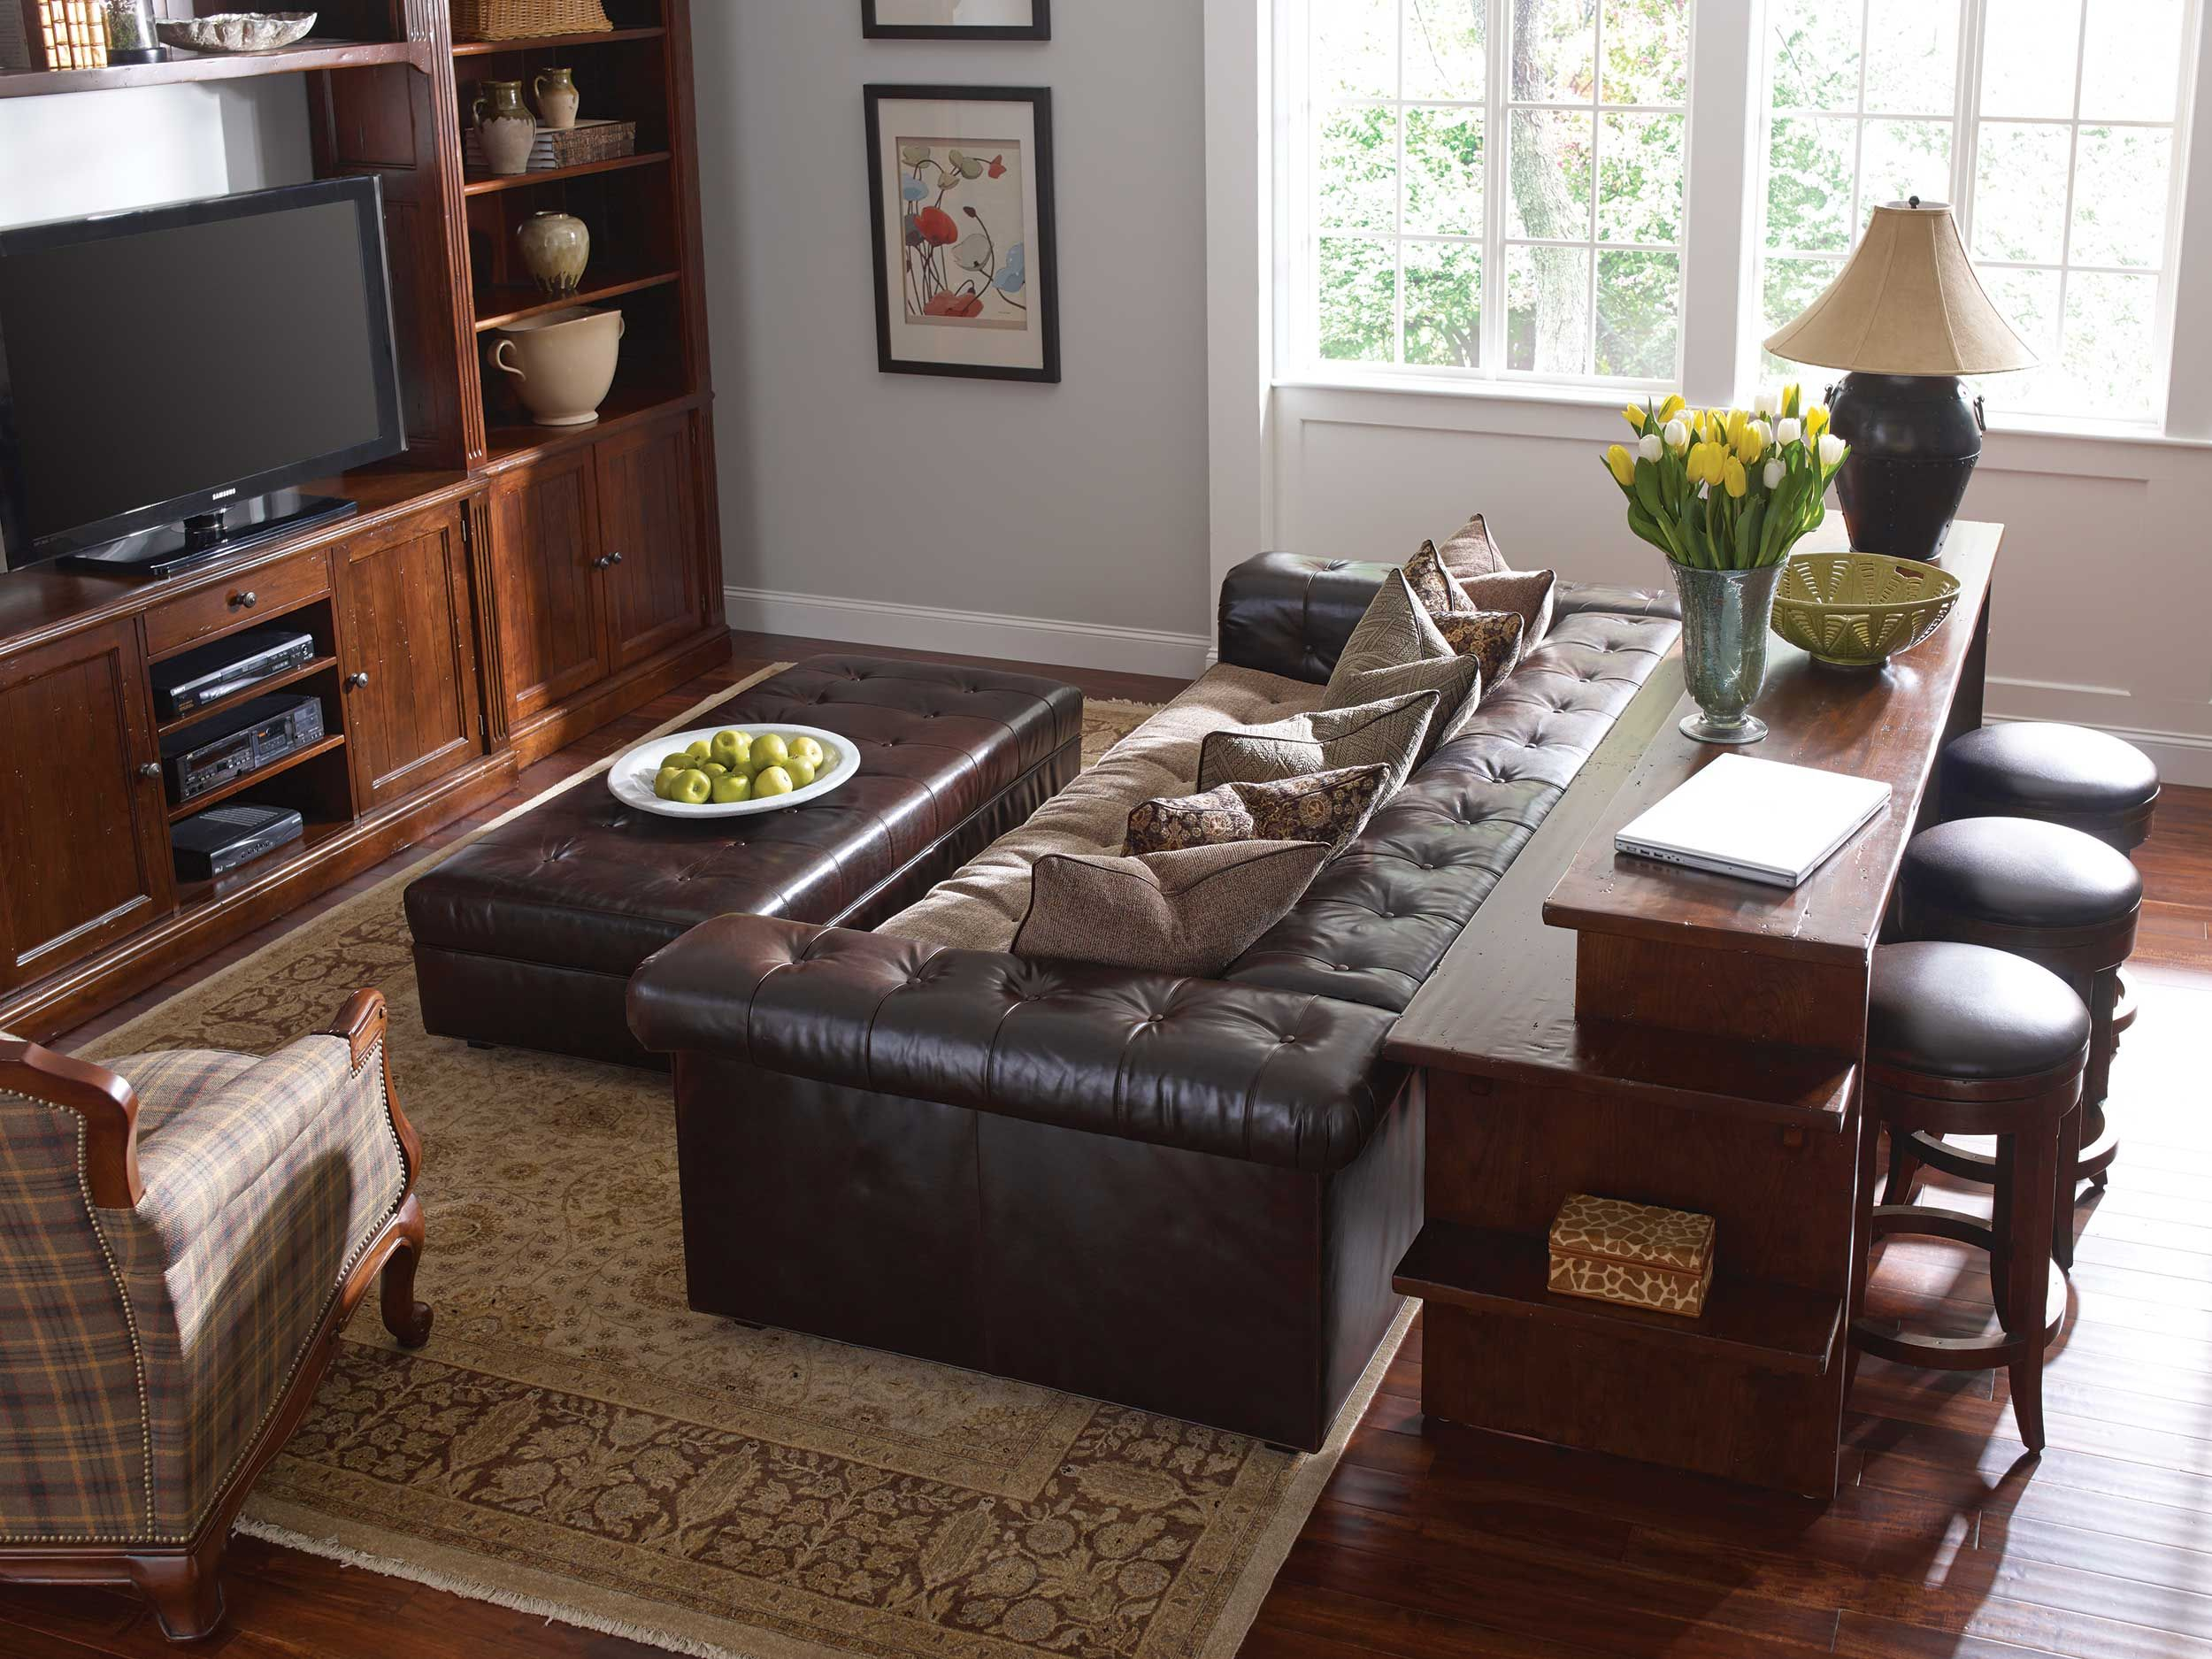 *New* Stickley Gathering Island In Family Room (Sofa Top View)